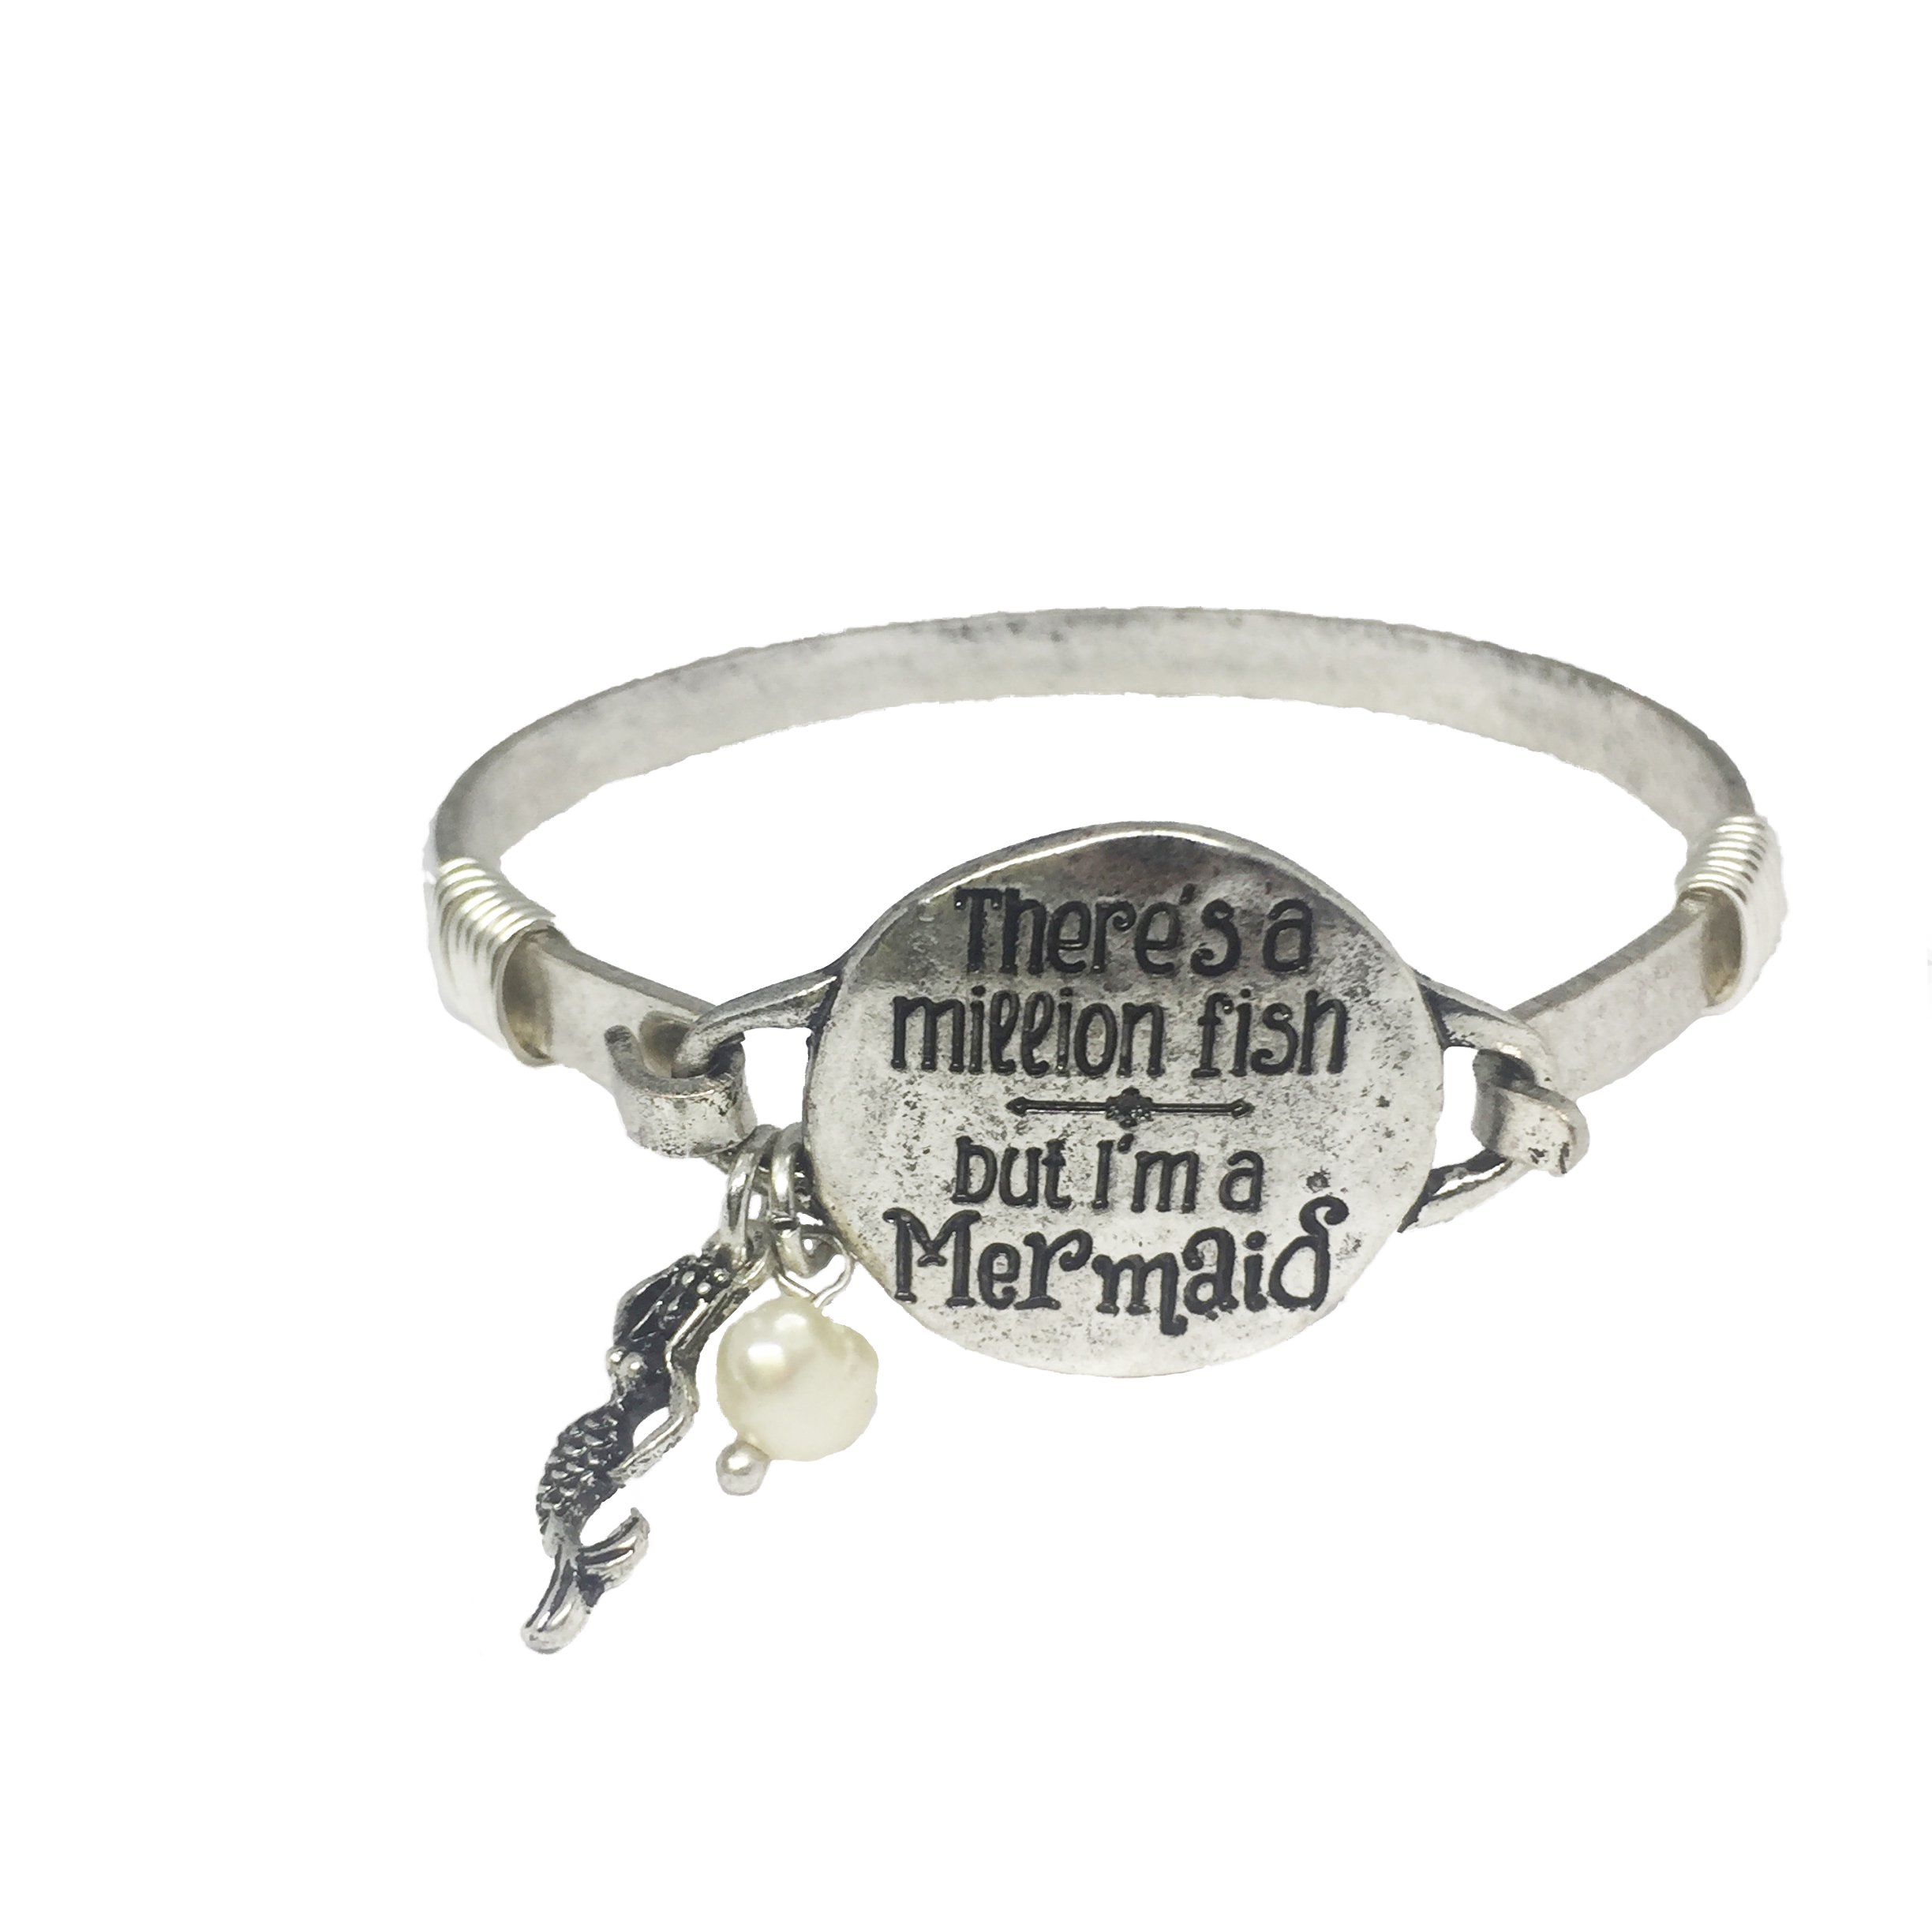 There's a Million Fish But I'm a Mermaid Summer Vacation Beach Vintage Silver Bangle Bracelet with Mermaid Charm and Bead